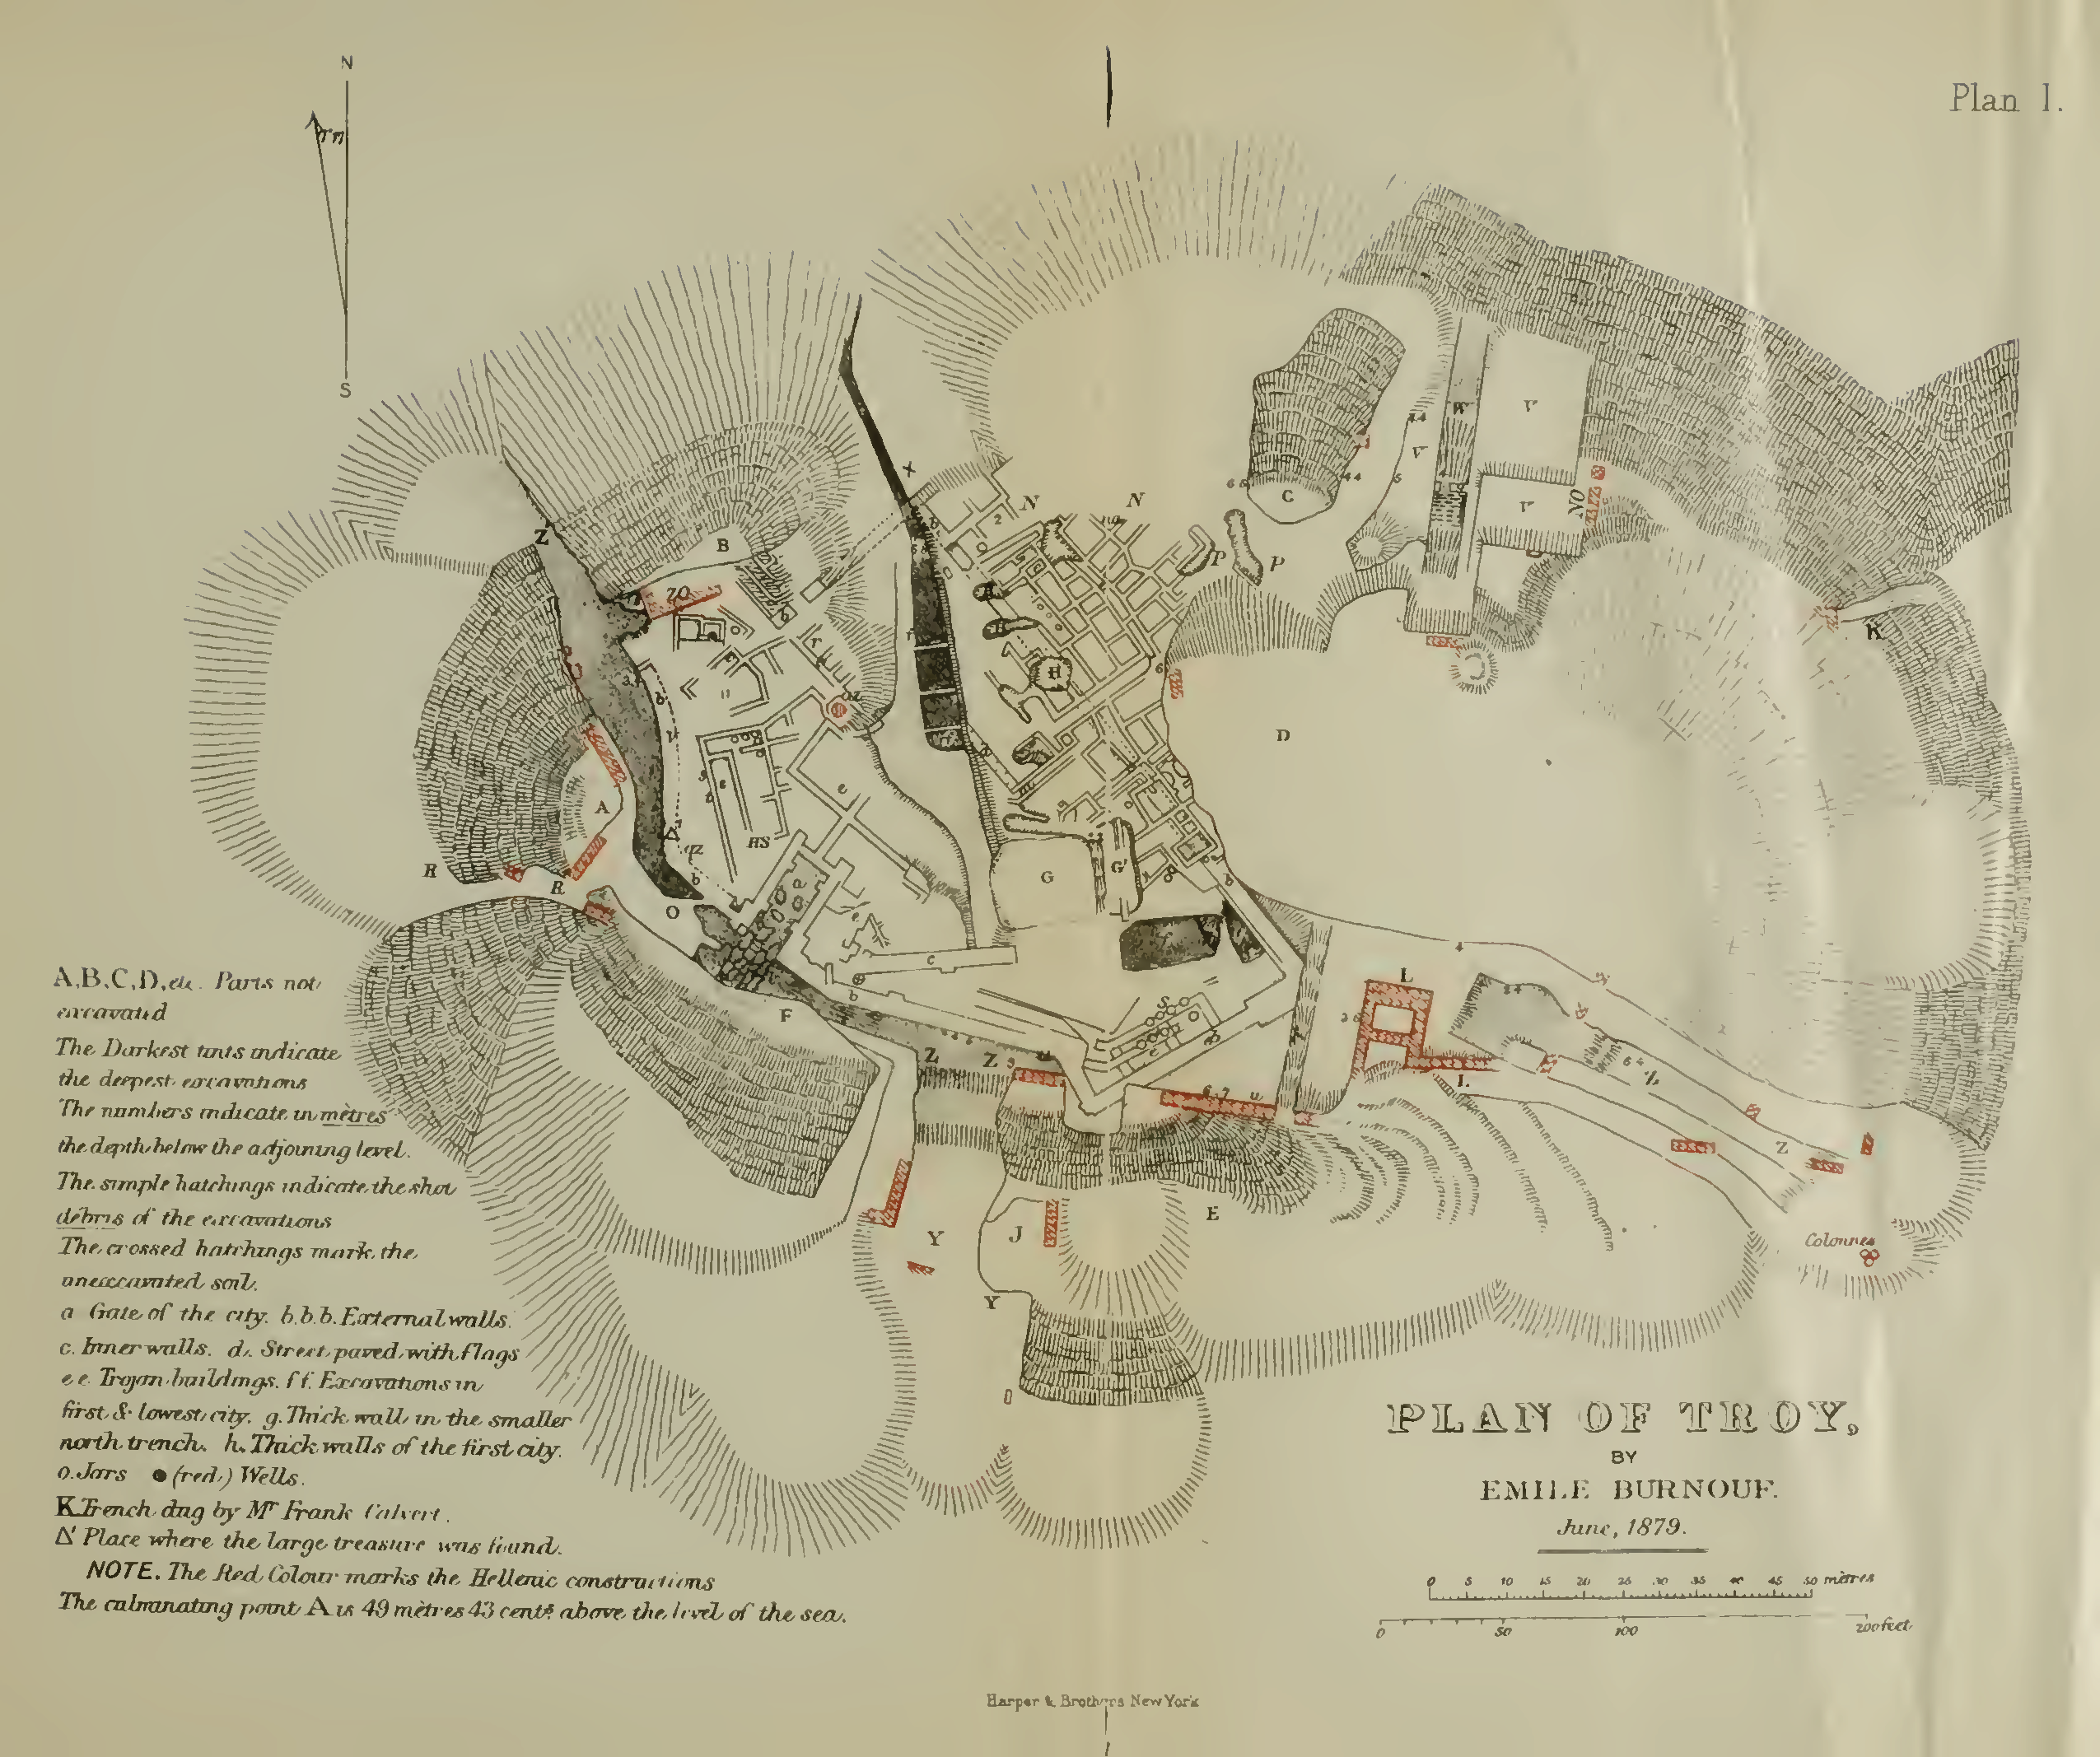 """Plan of Troy, by Emile Burnouf, from """"Ilios: The City and the Country of the Trojans"""" by Heinnrich Schliemann, 1880."""